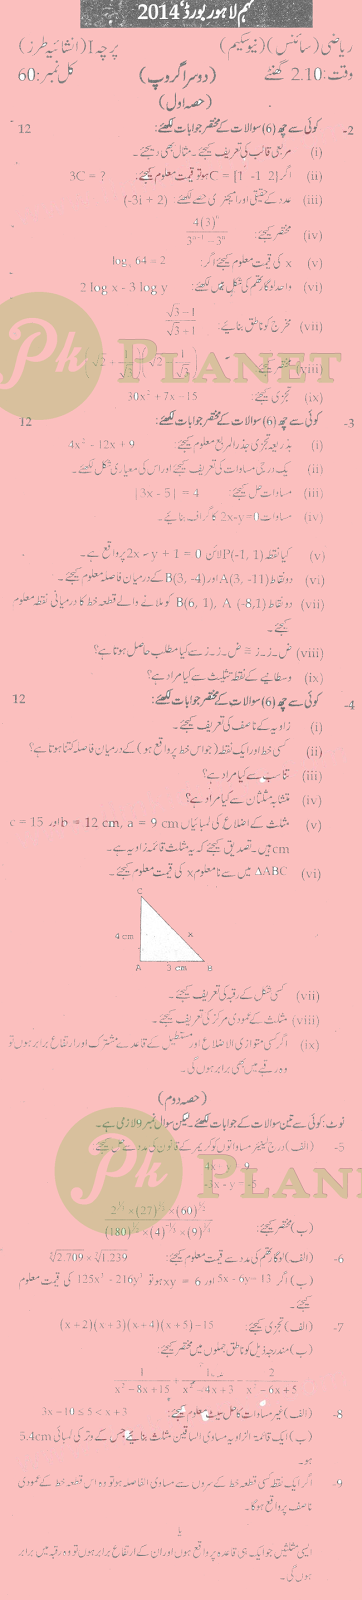 Past Papers of 9th Class Lahore Board 2014 Mathematics